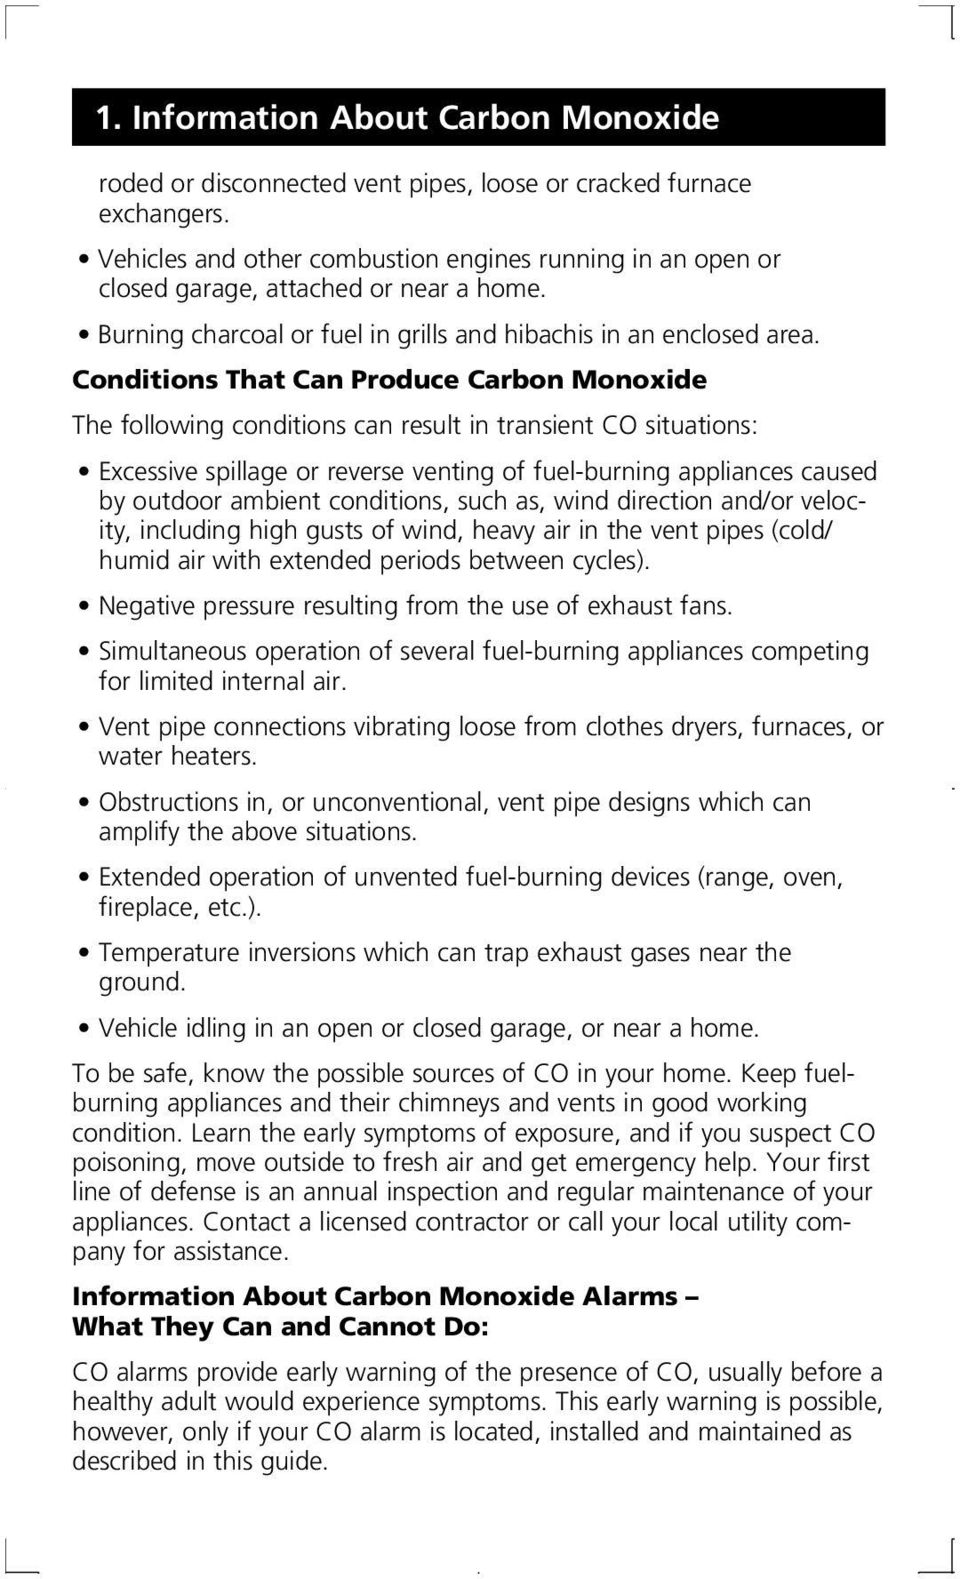 Conditions That Can Produce Carbon Monoxide The following conditions can result in transient CO situations: Excessive spillage or reverse venting of fuel-burning appliances caused by outdoor ambient